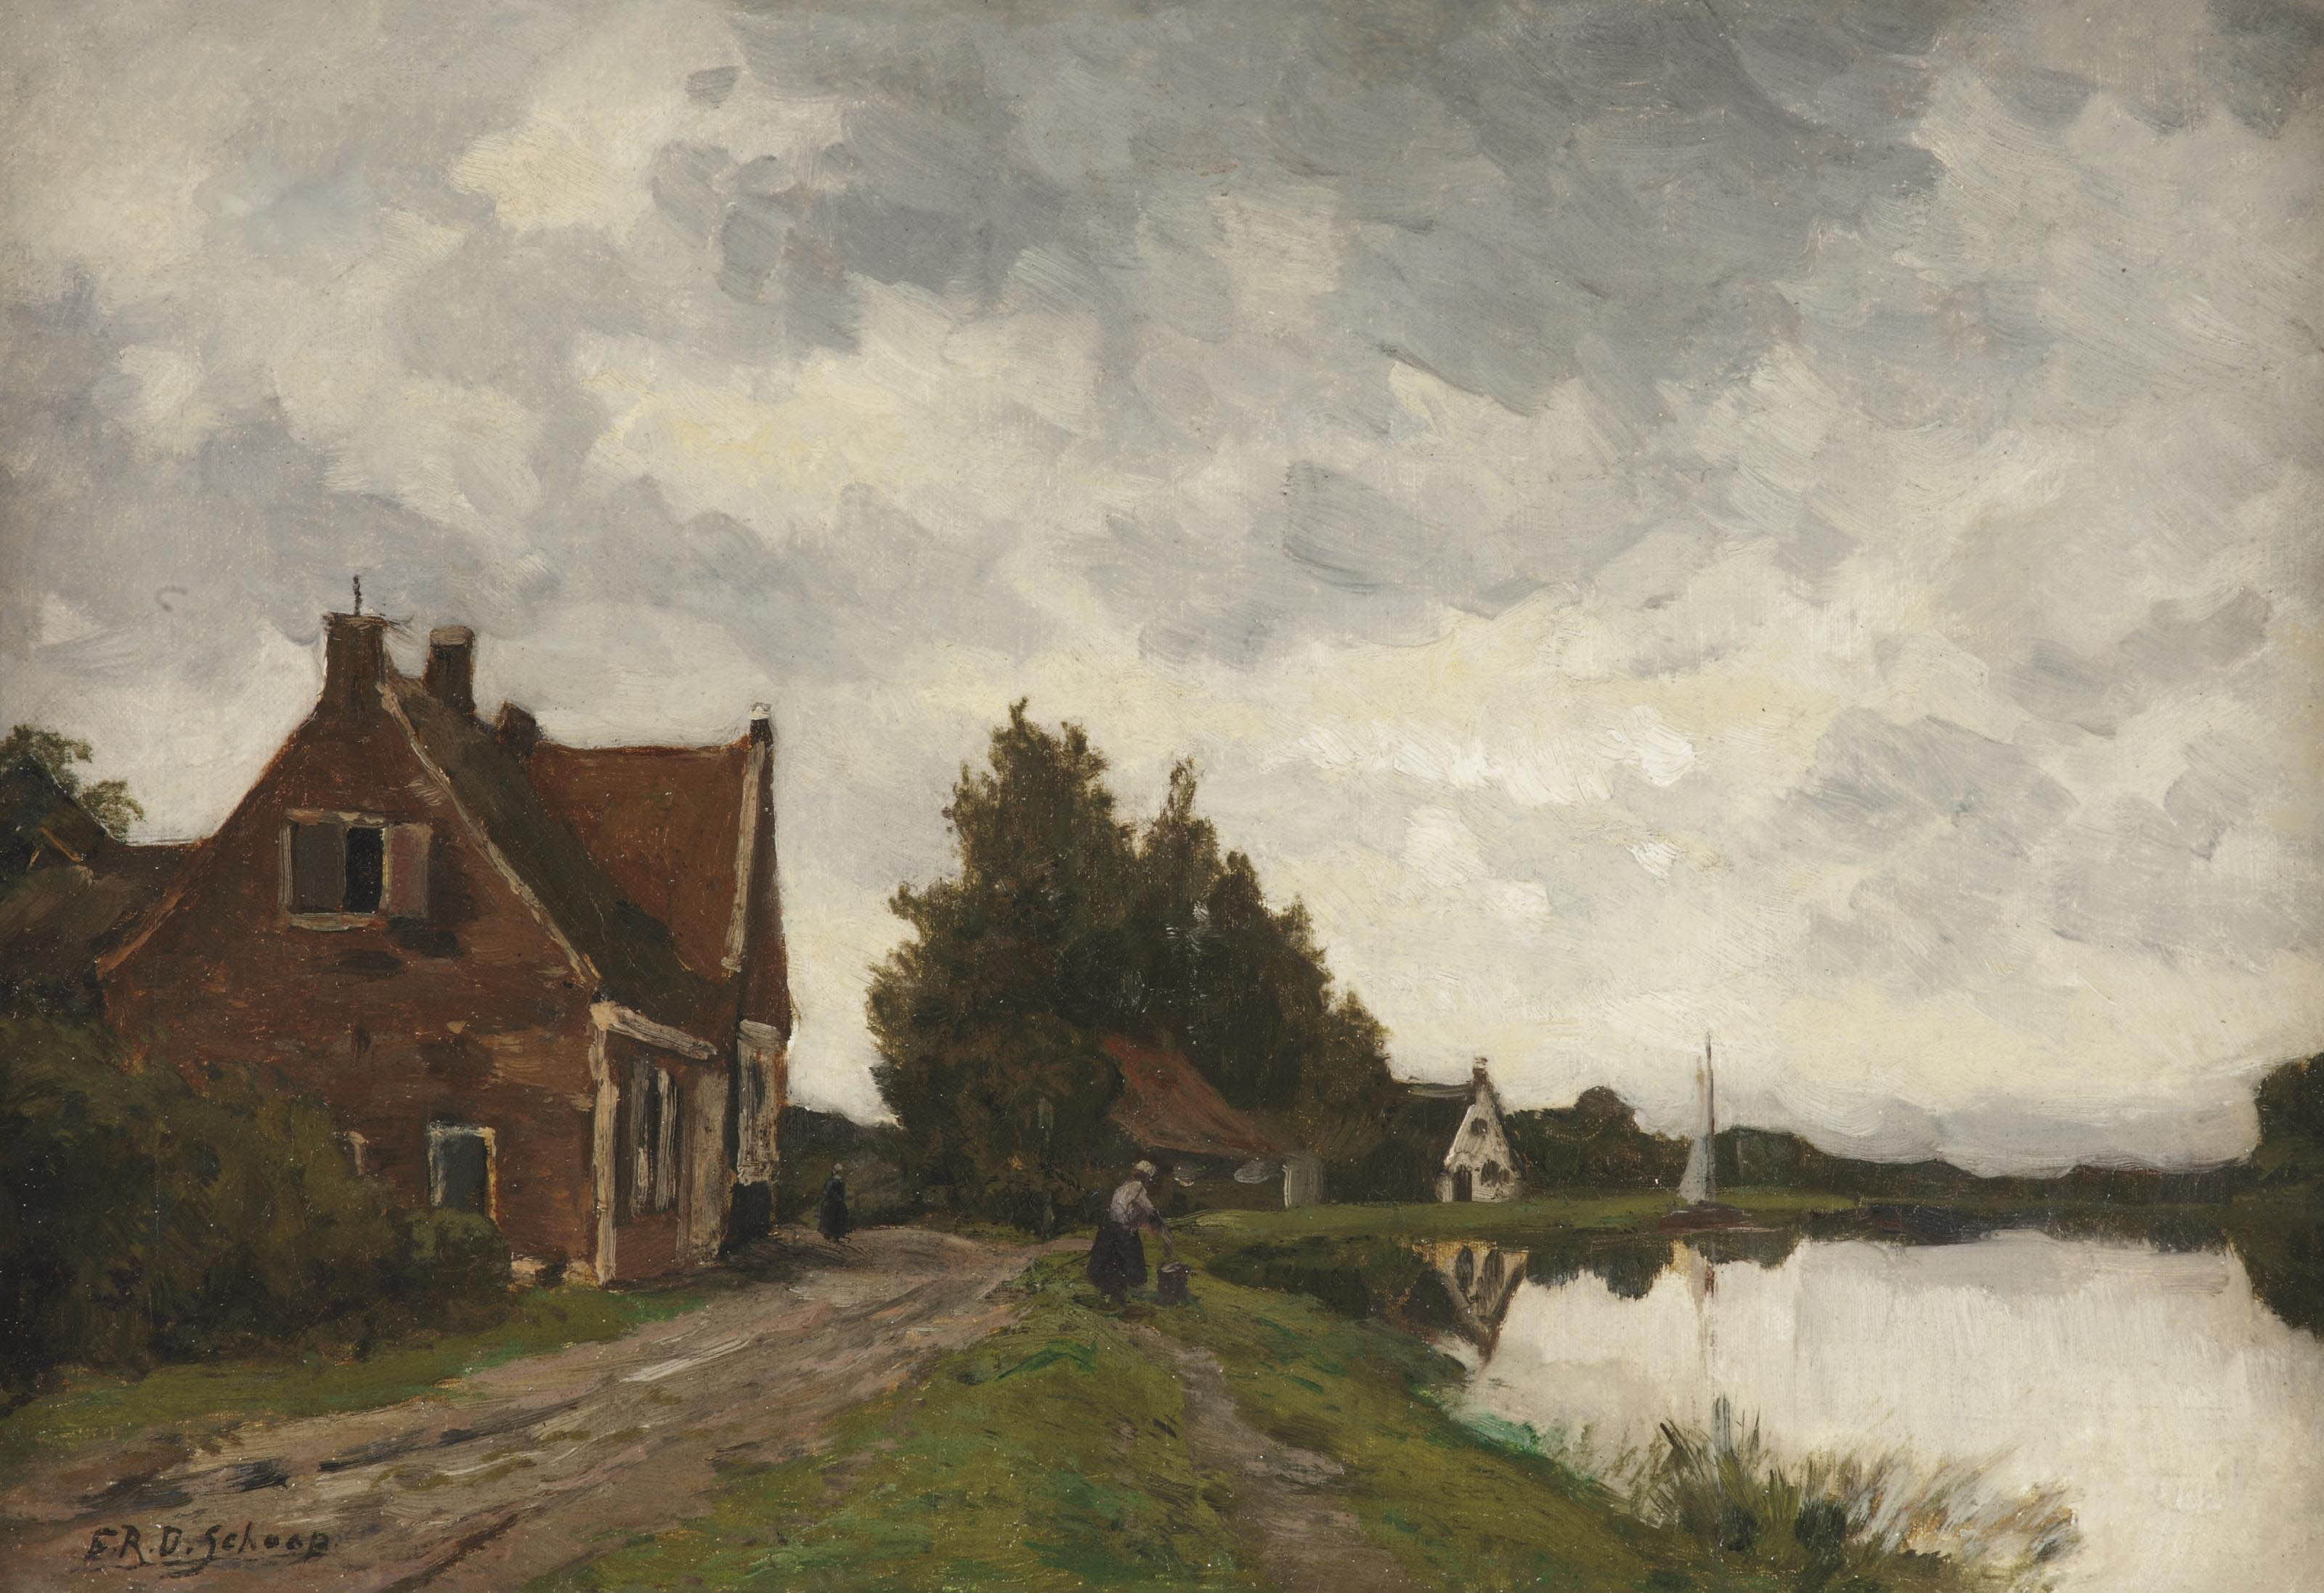 Klompweg, Nigtevecht, with Fort Hinderdam in the distance